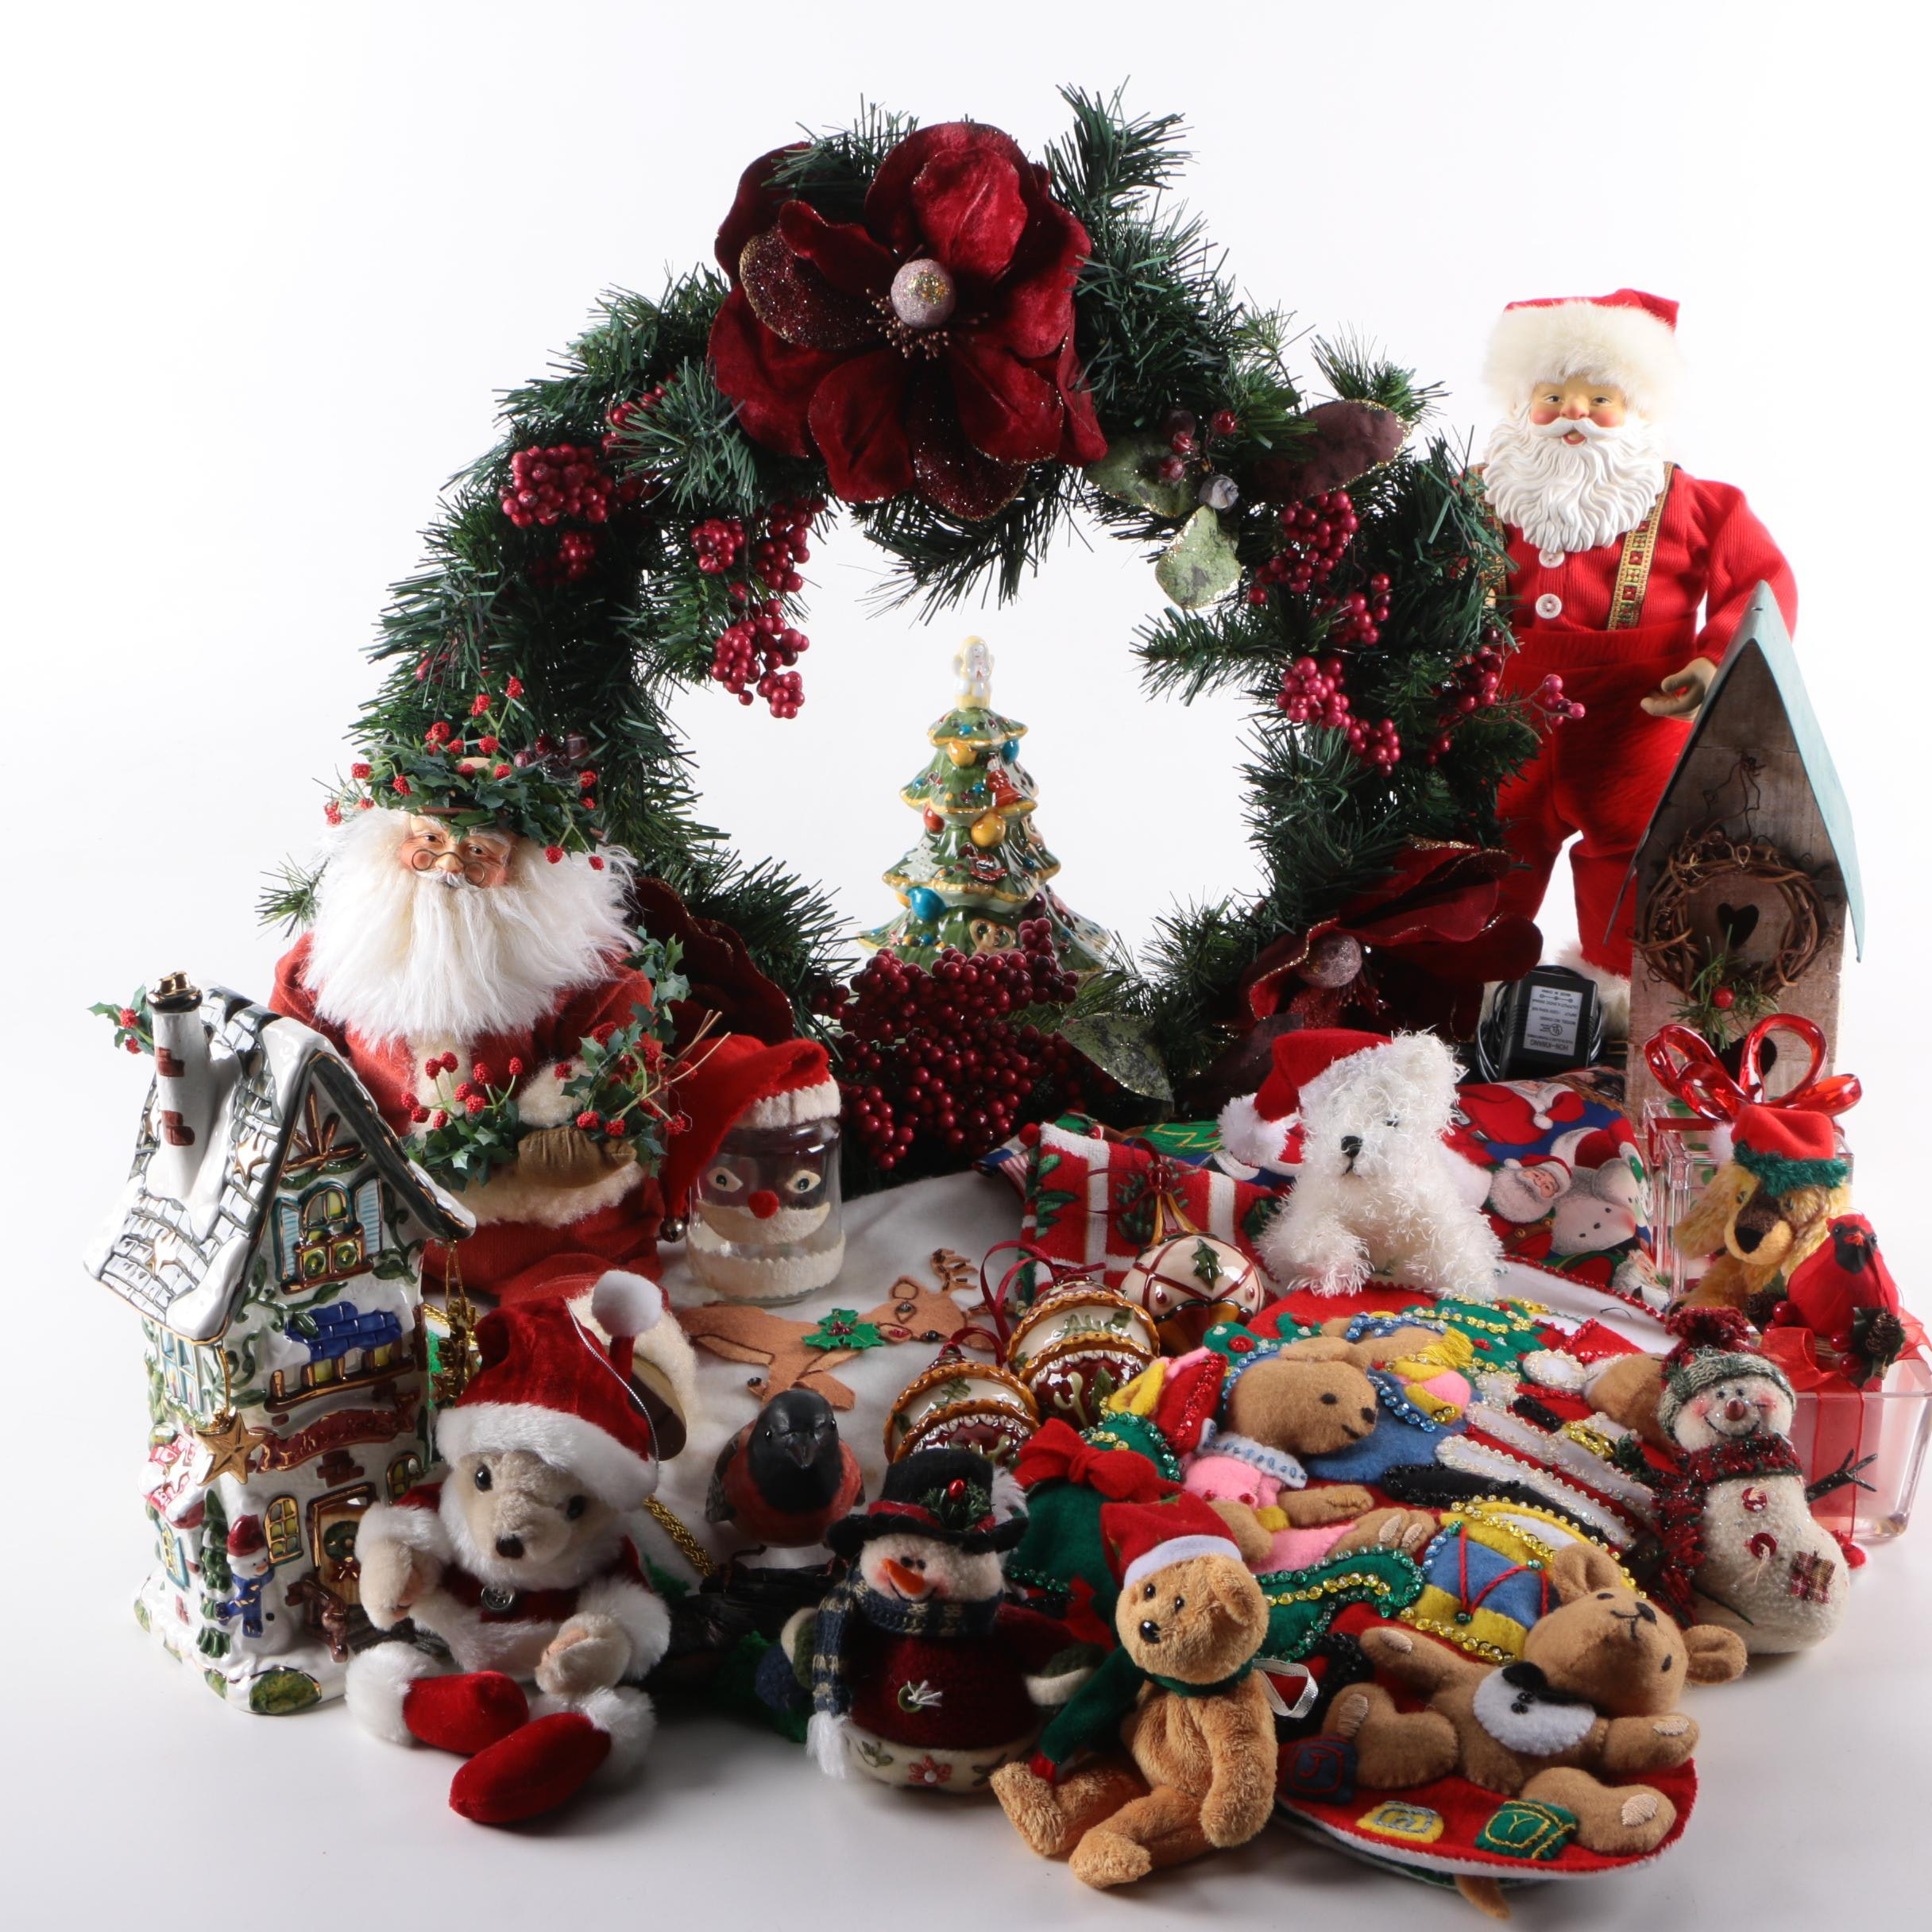 Christmas Wreath, Stockings, Ornaments, and Plush Toys